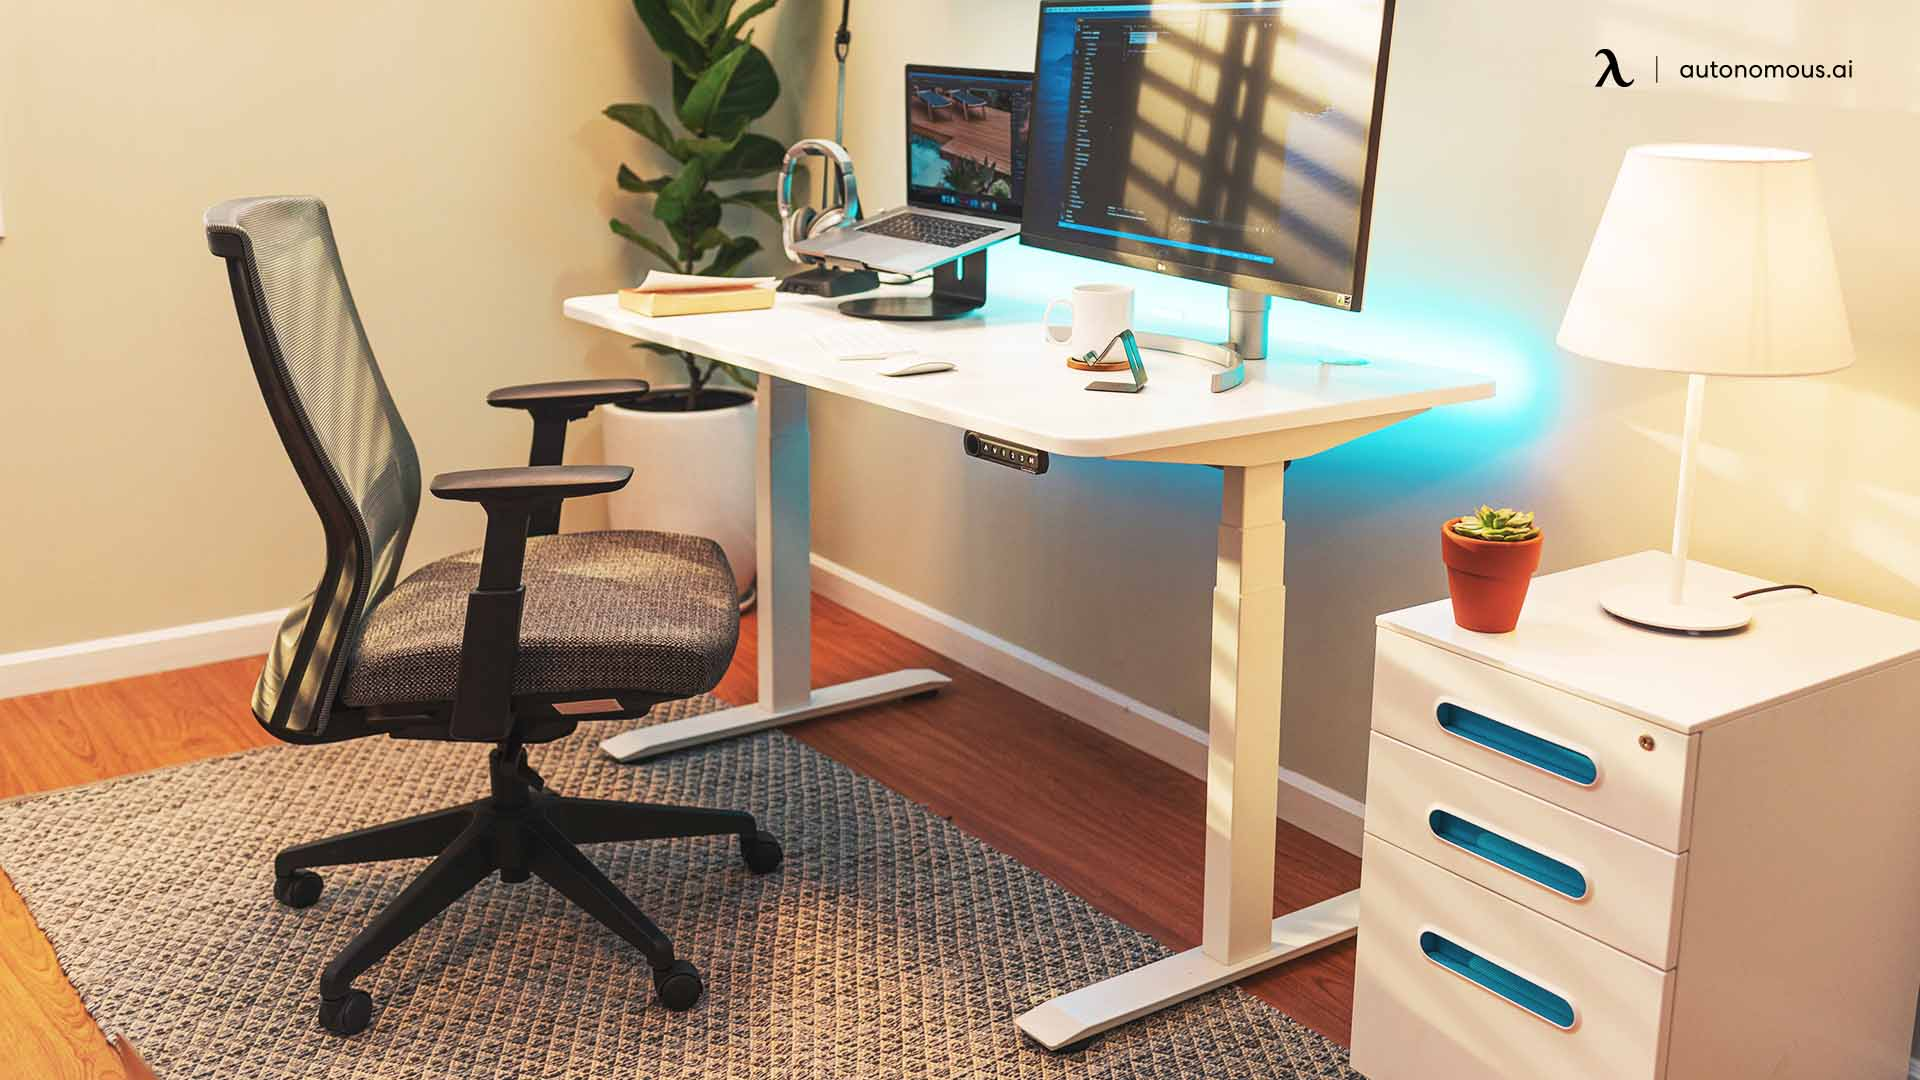 Mistake 5: Forgetting your workspace dimentions